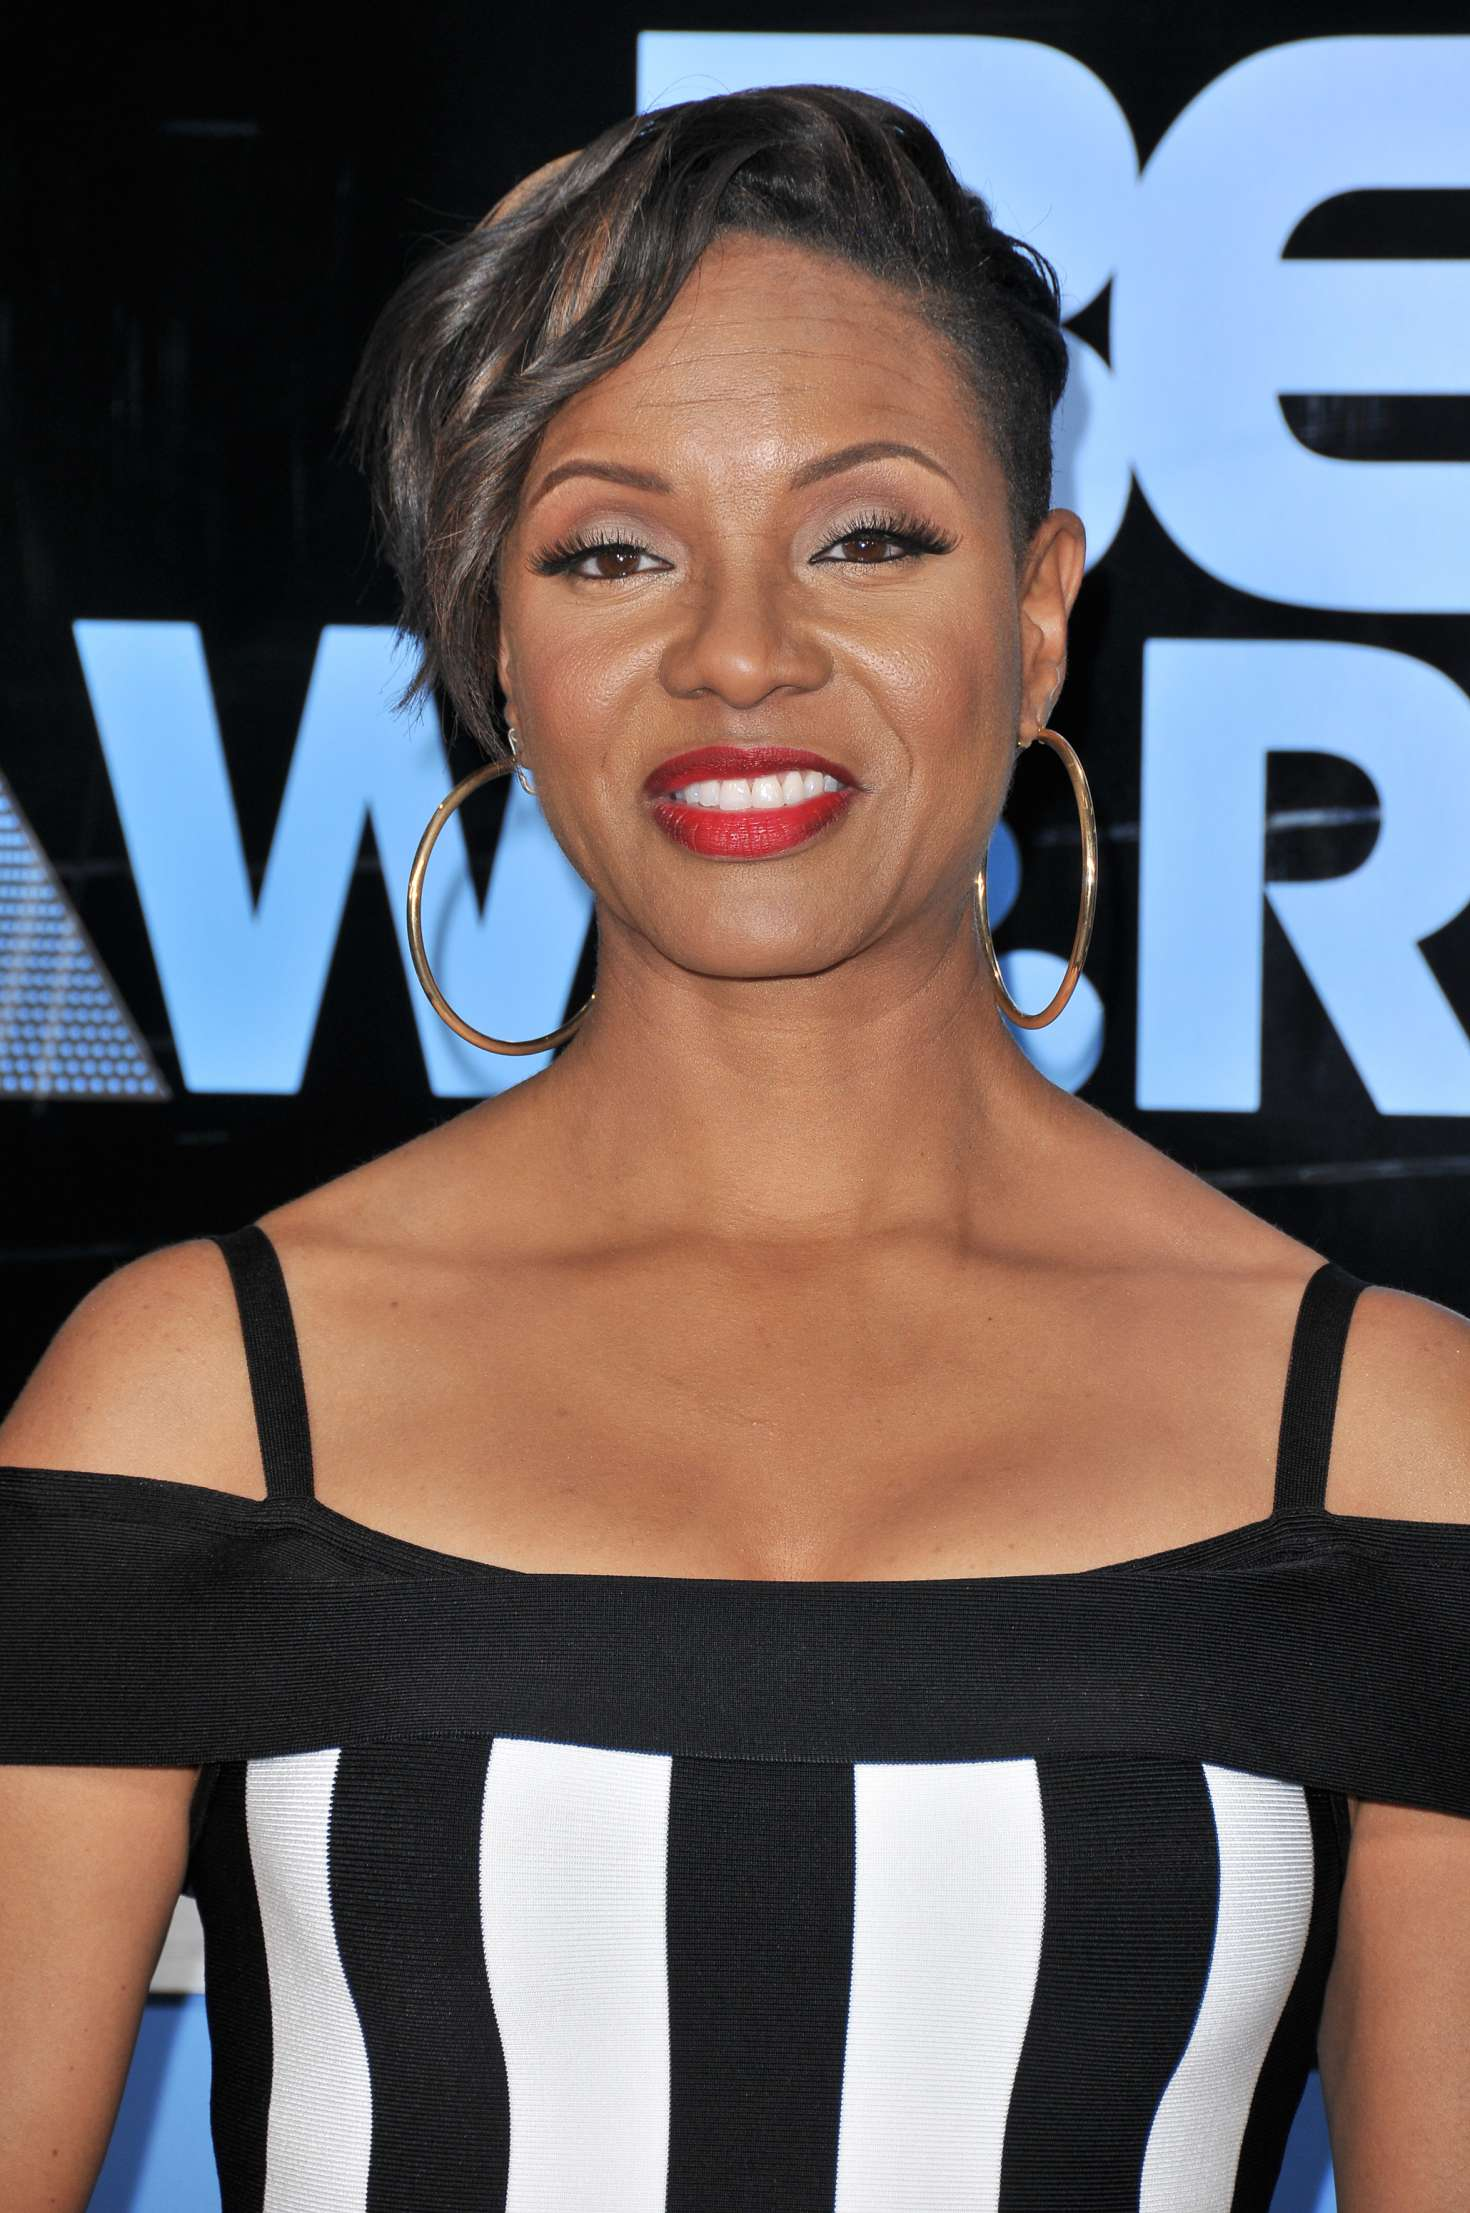 MC Lyte Picture 24 - 2015 BET Awards - Arrivals